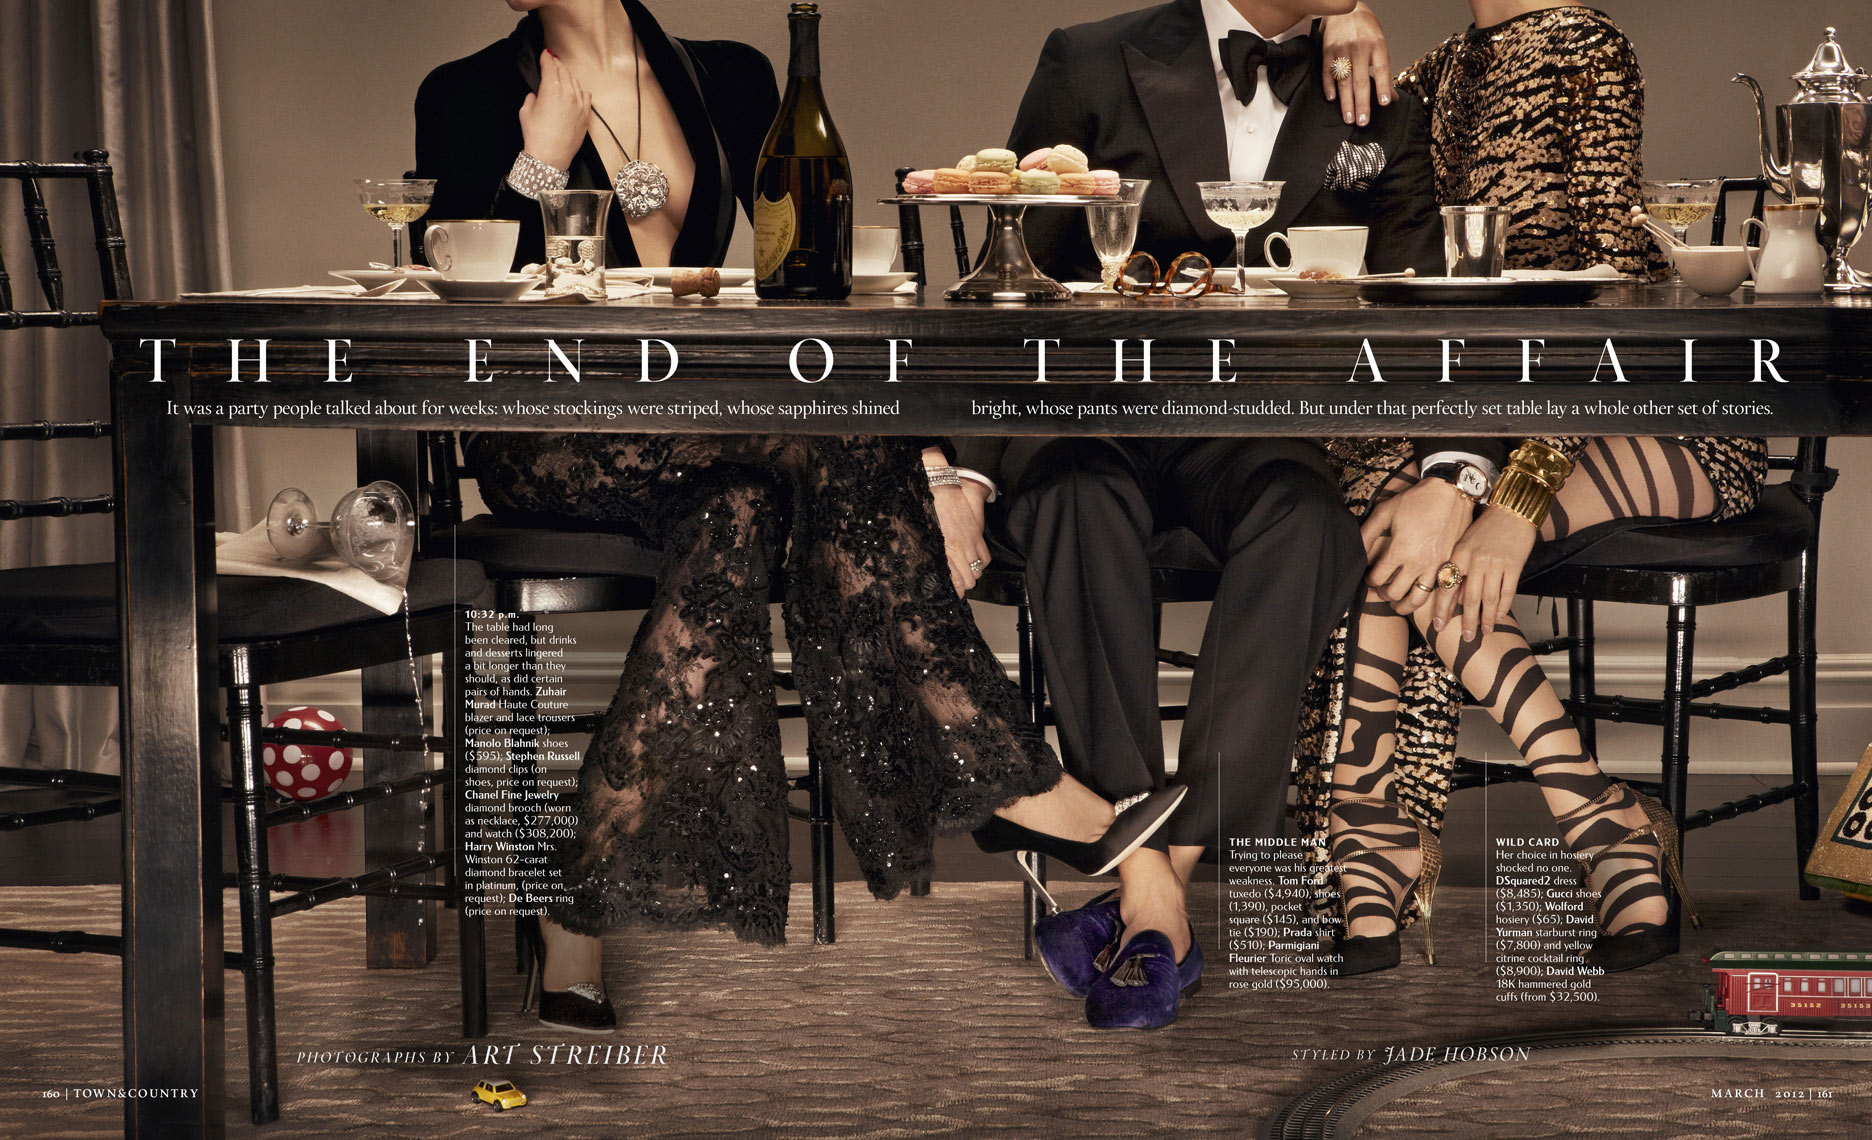 TOWN & COUNTRY - March 2012